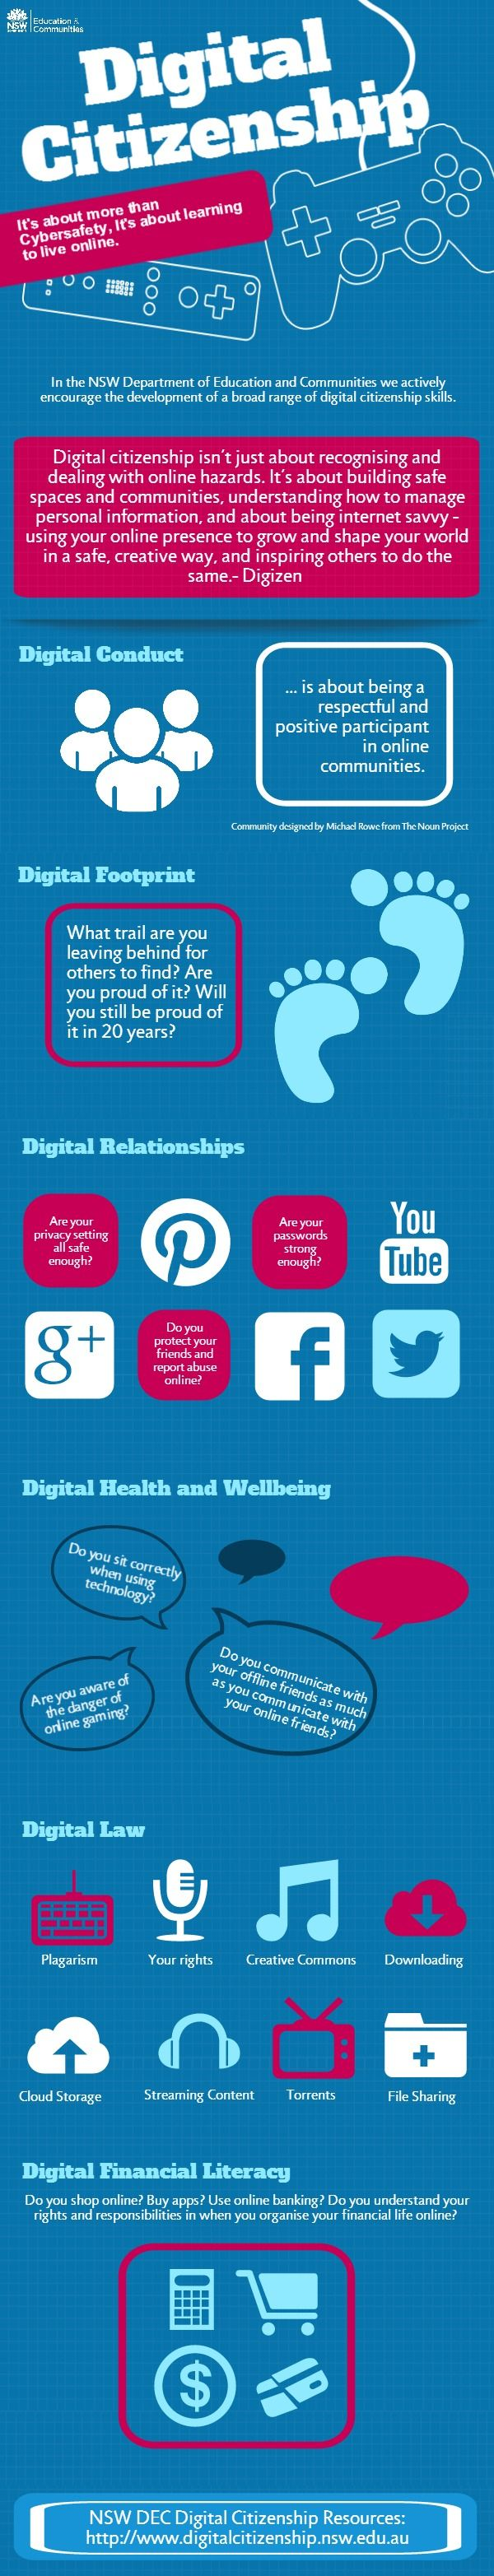 Digital Citizenship is.... | Created in #free @Piktochart #Infographic Editor at www.piktochart.com